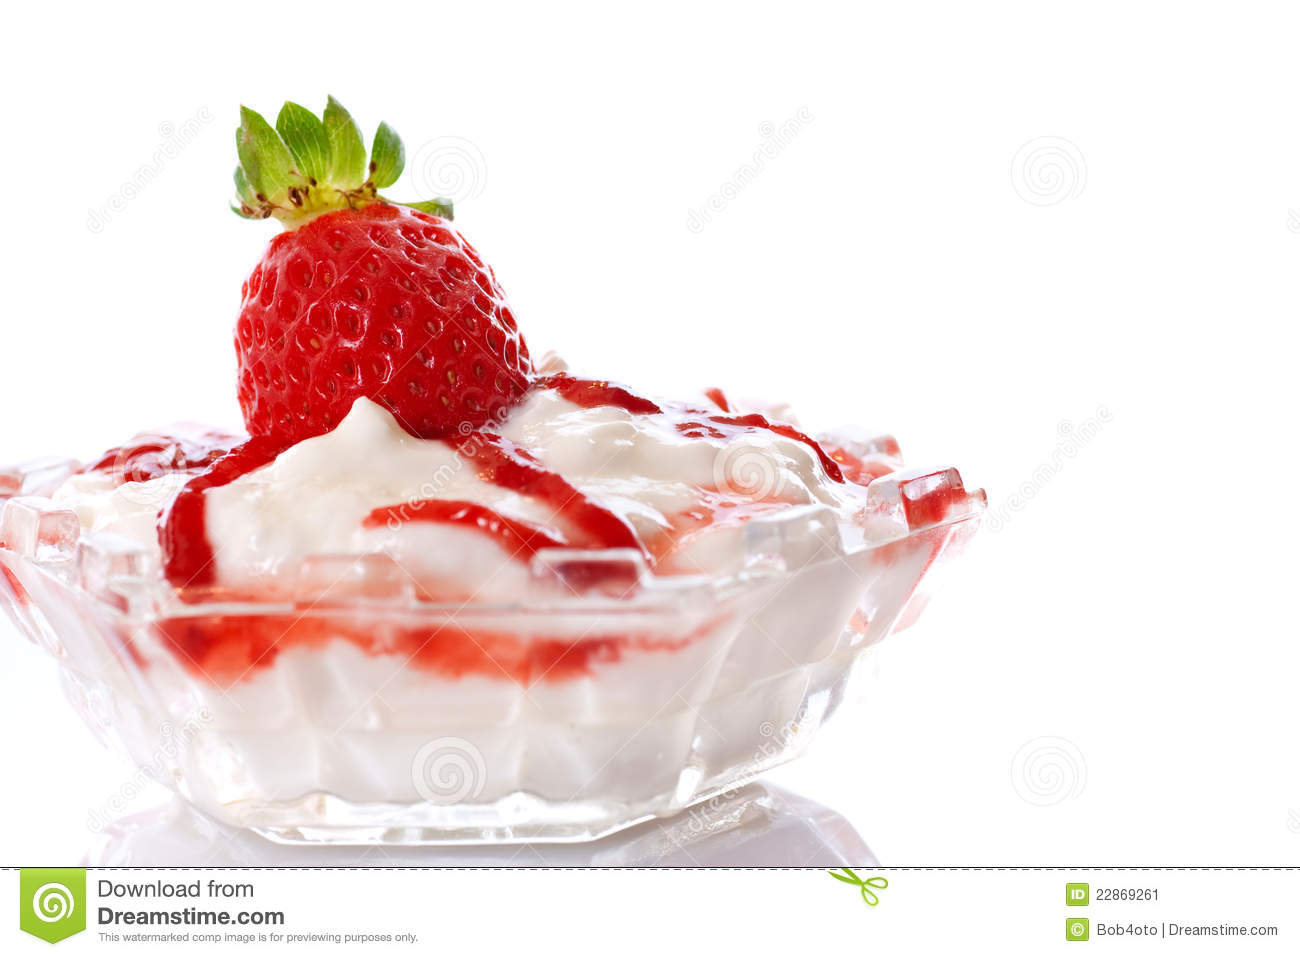 Strawberries And Cream Stock Image - Image: 22869261